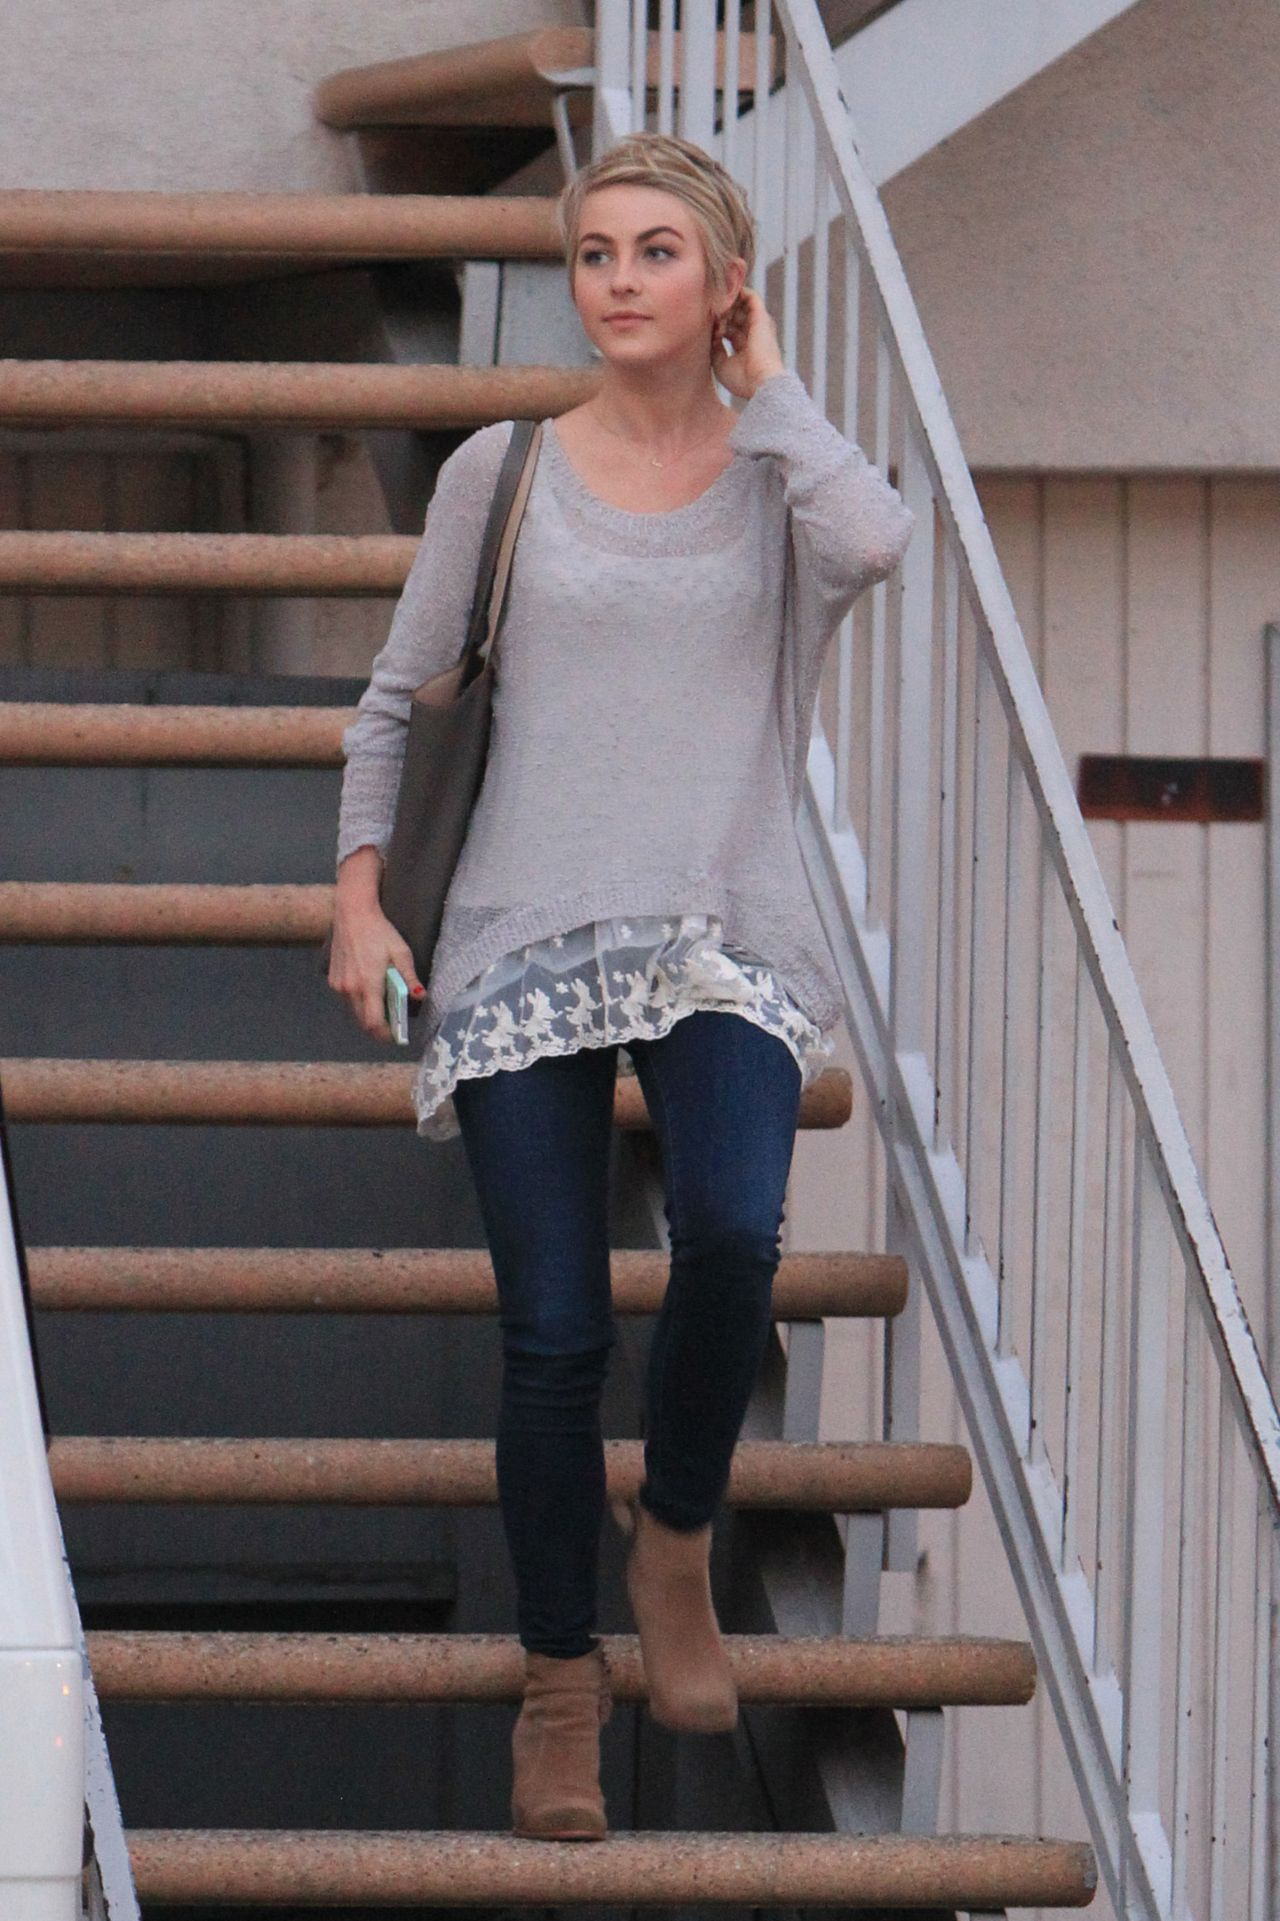 Julianne Hough Street Style - Heads to a Meeting, Los Angeles, February 2014